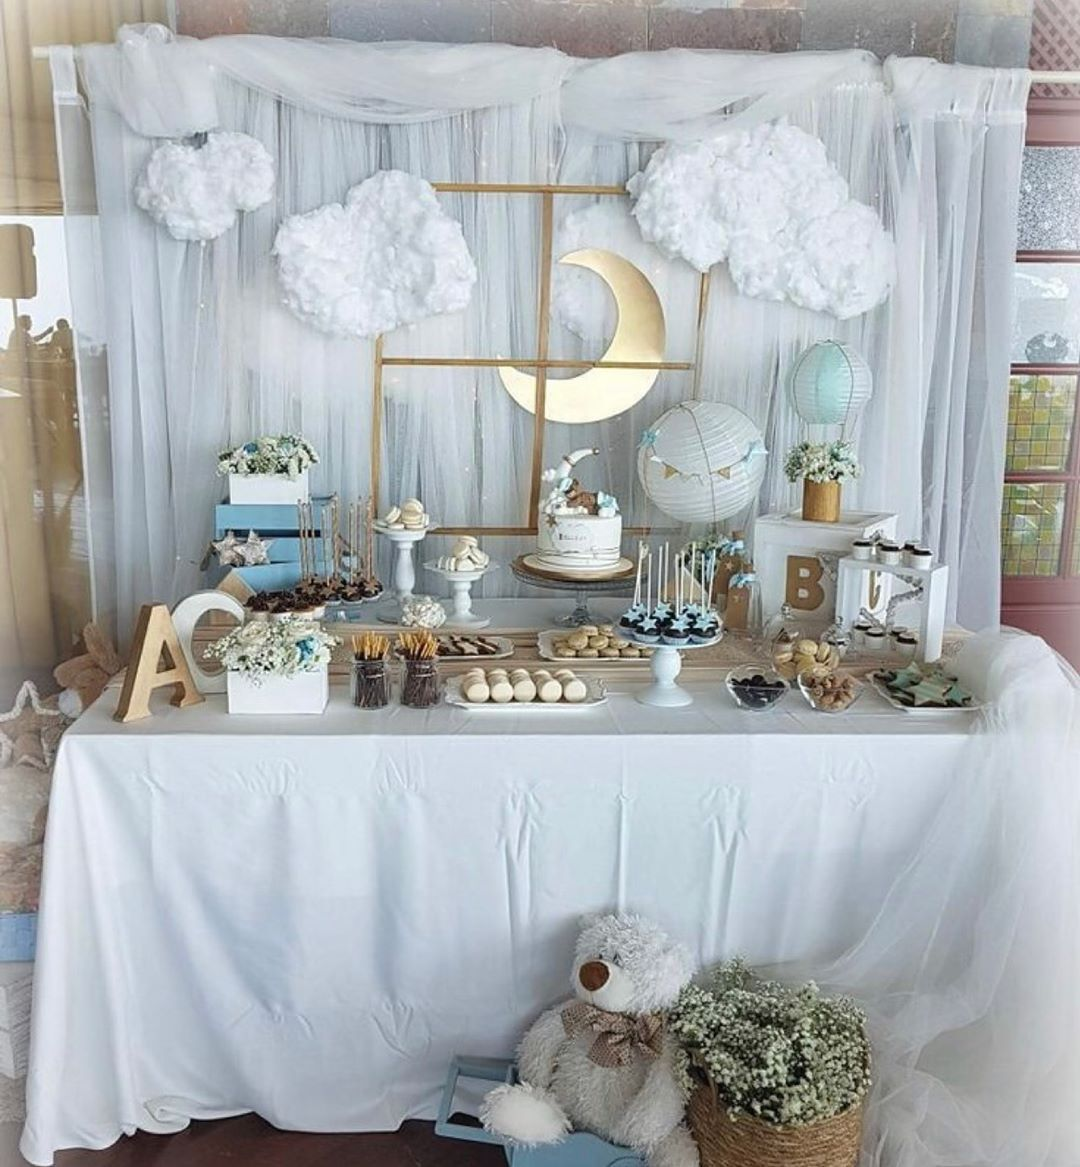 20+ fun and modern baby shower games 2019 Page 5 of 25